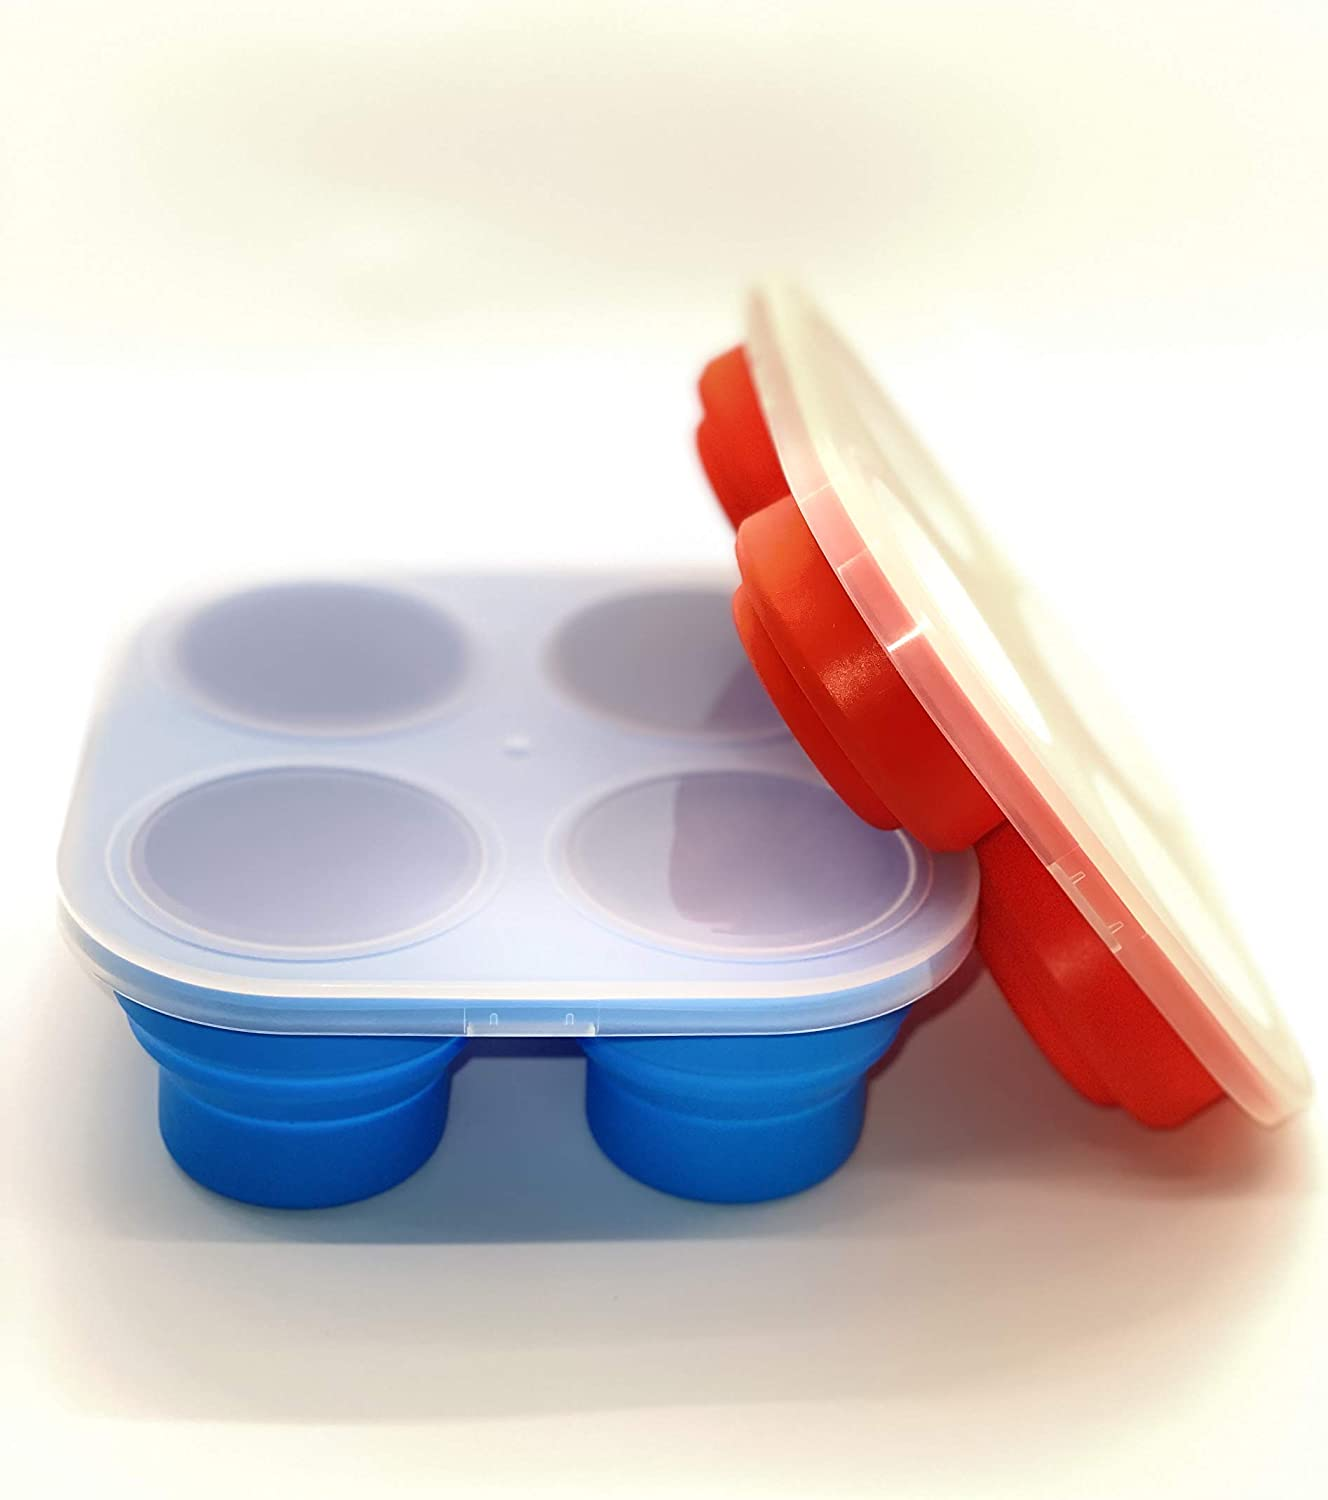 Collapsible Silicone Baby Food Tray (Coral Red)